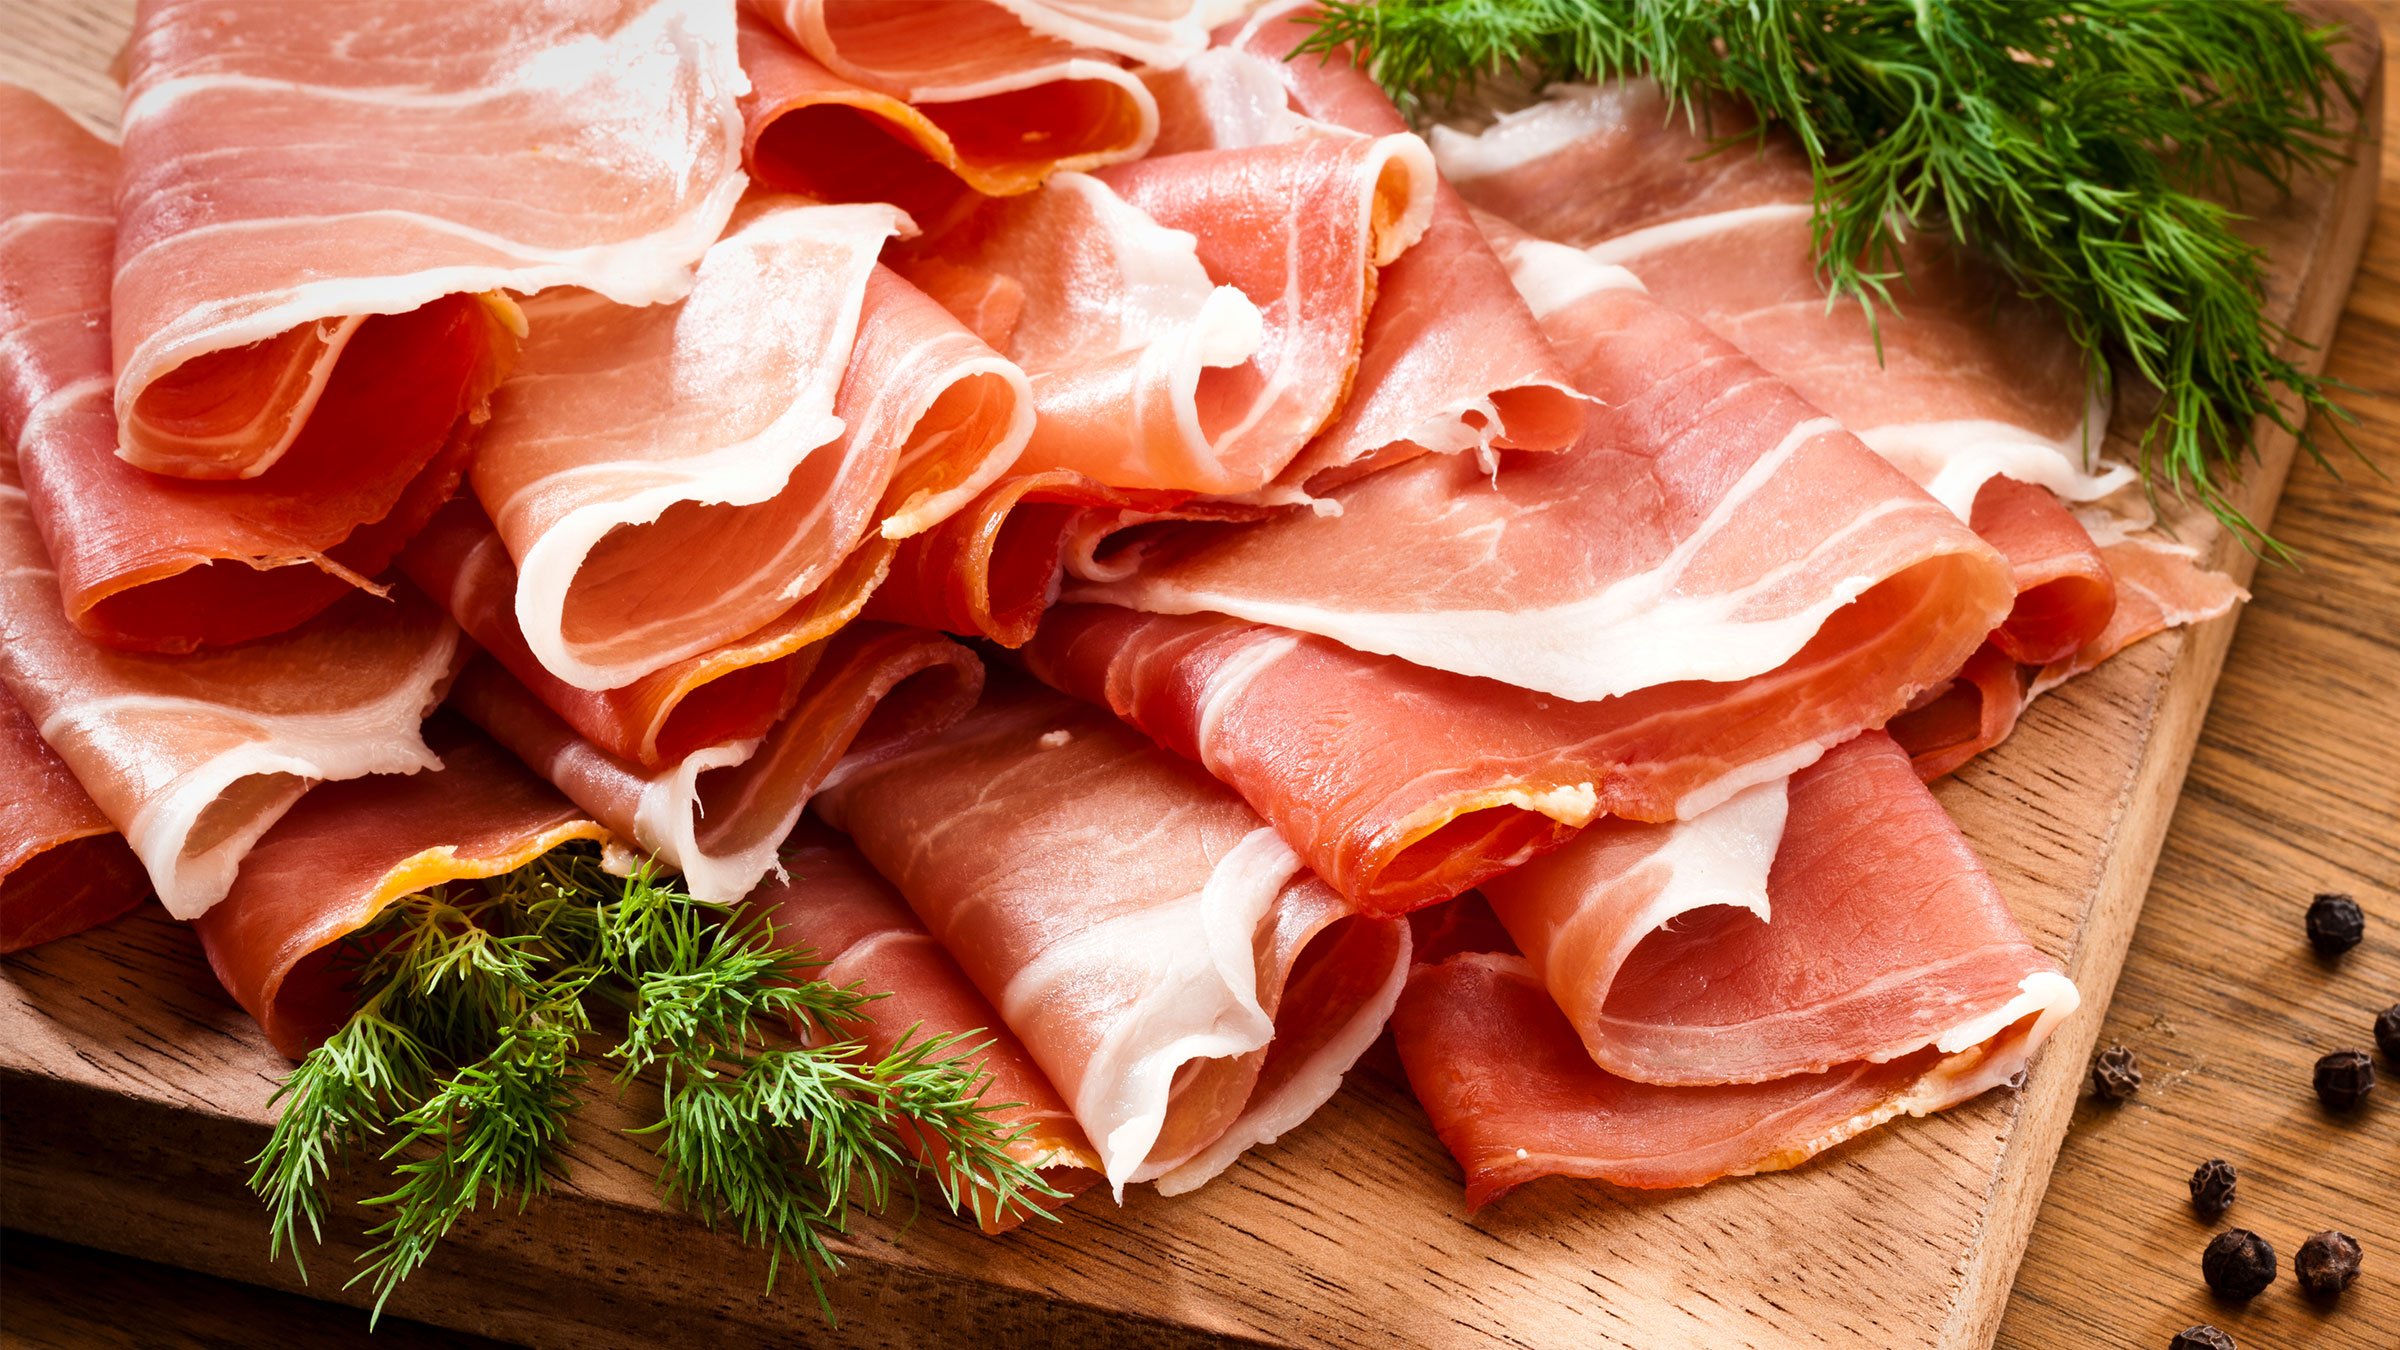 Spanish ham created with GEA Slicing & Packaging line